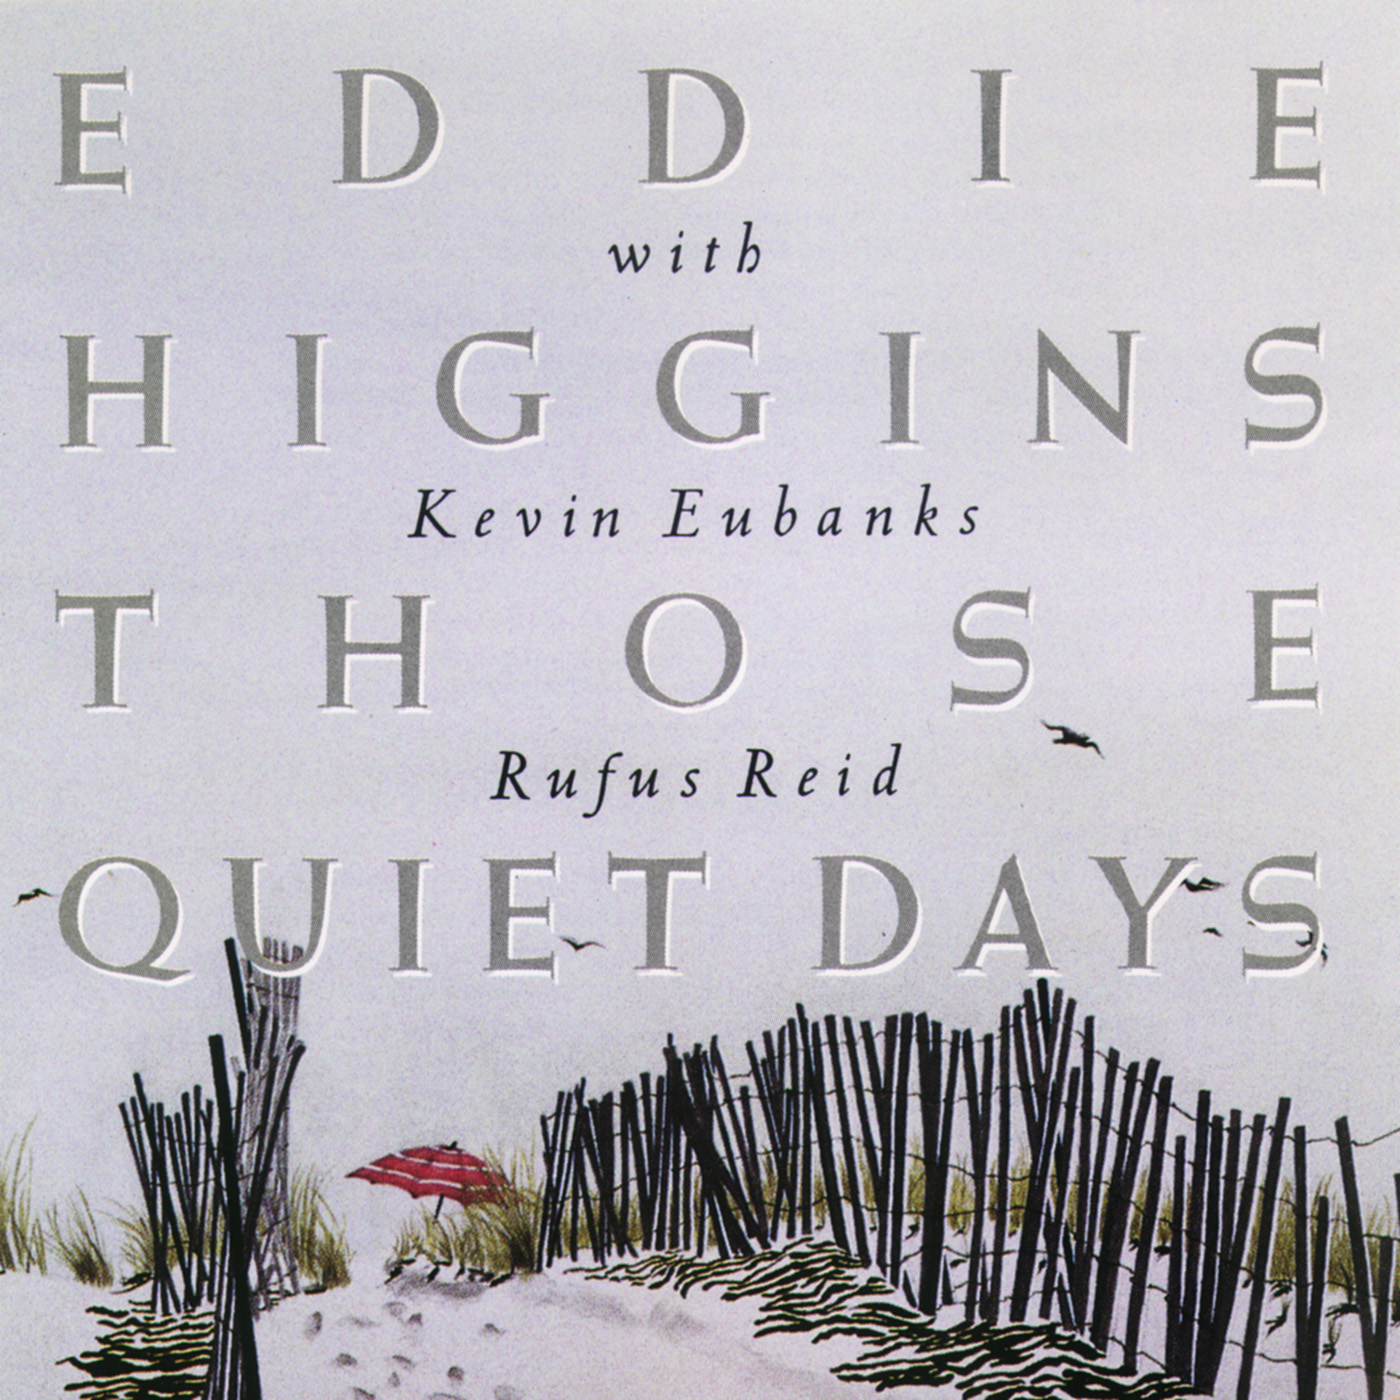 Those Quiet Days by Eddie Higgins cover